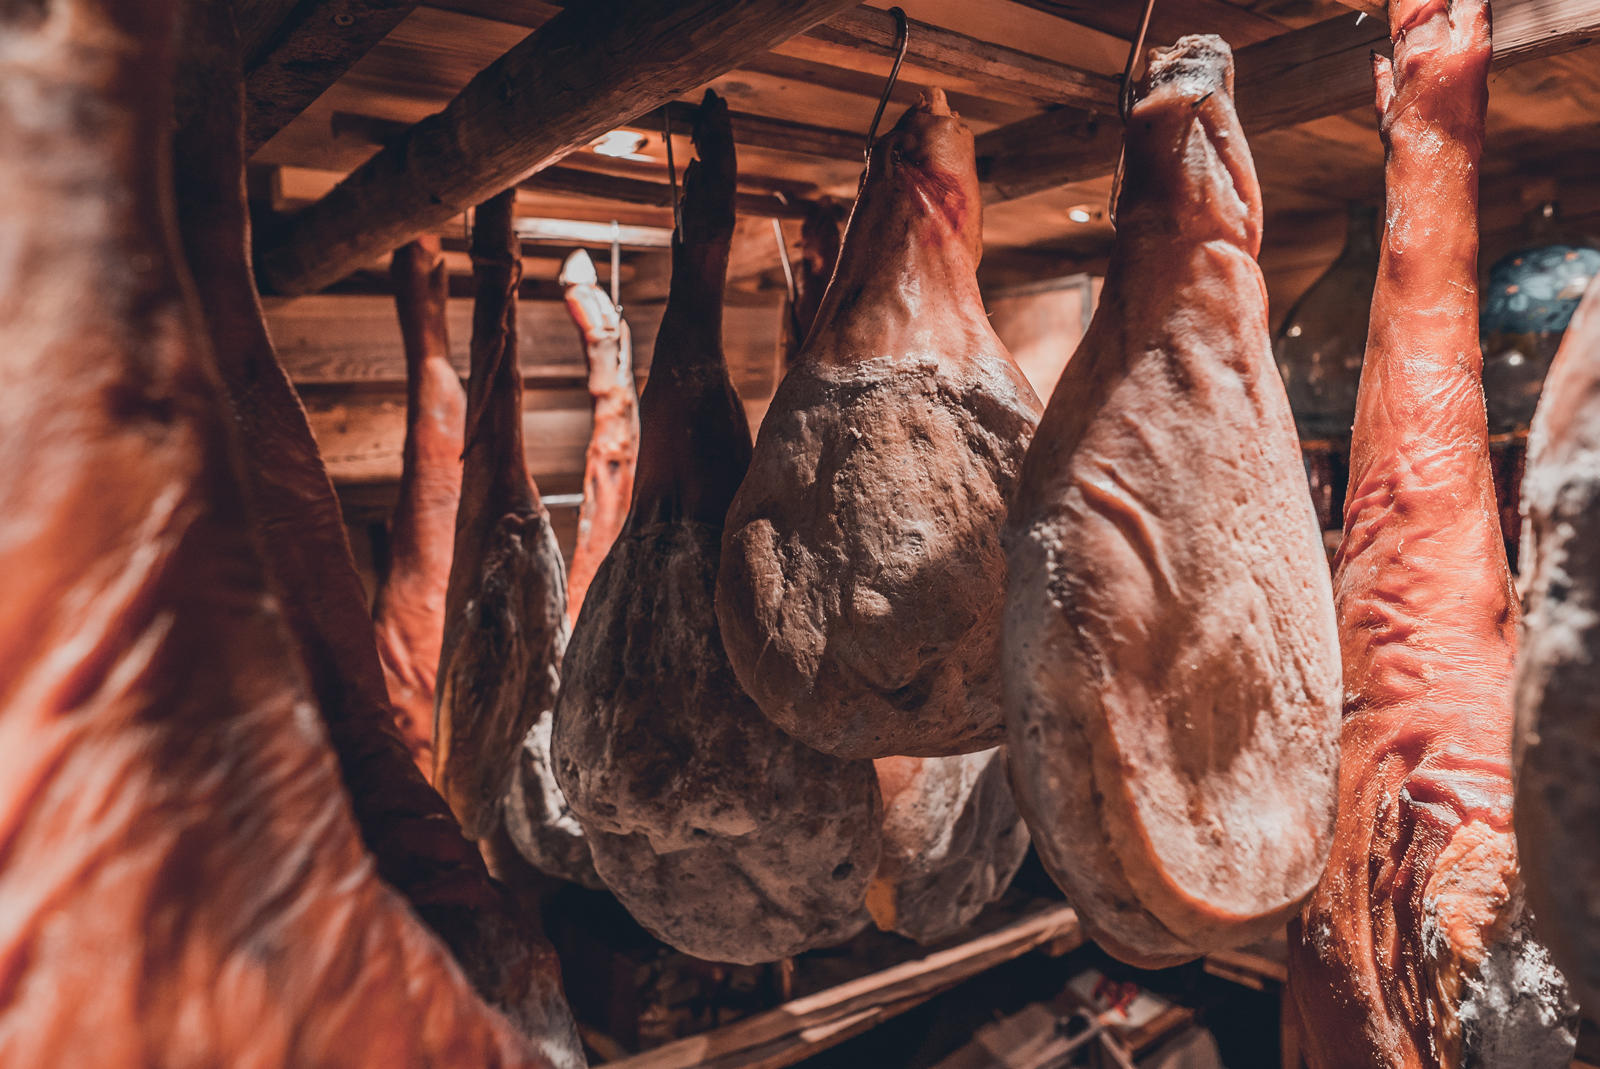 Dried Hams at Hotel Les Gentianettes, The Originals Relais